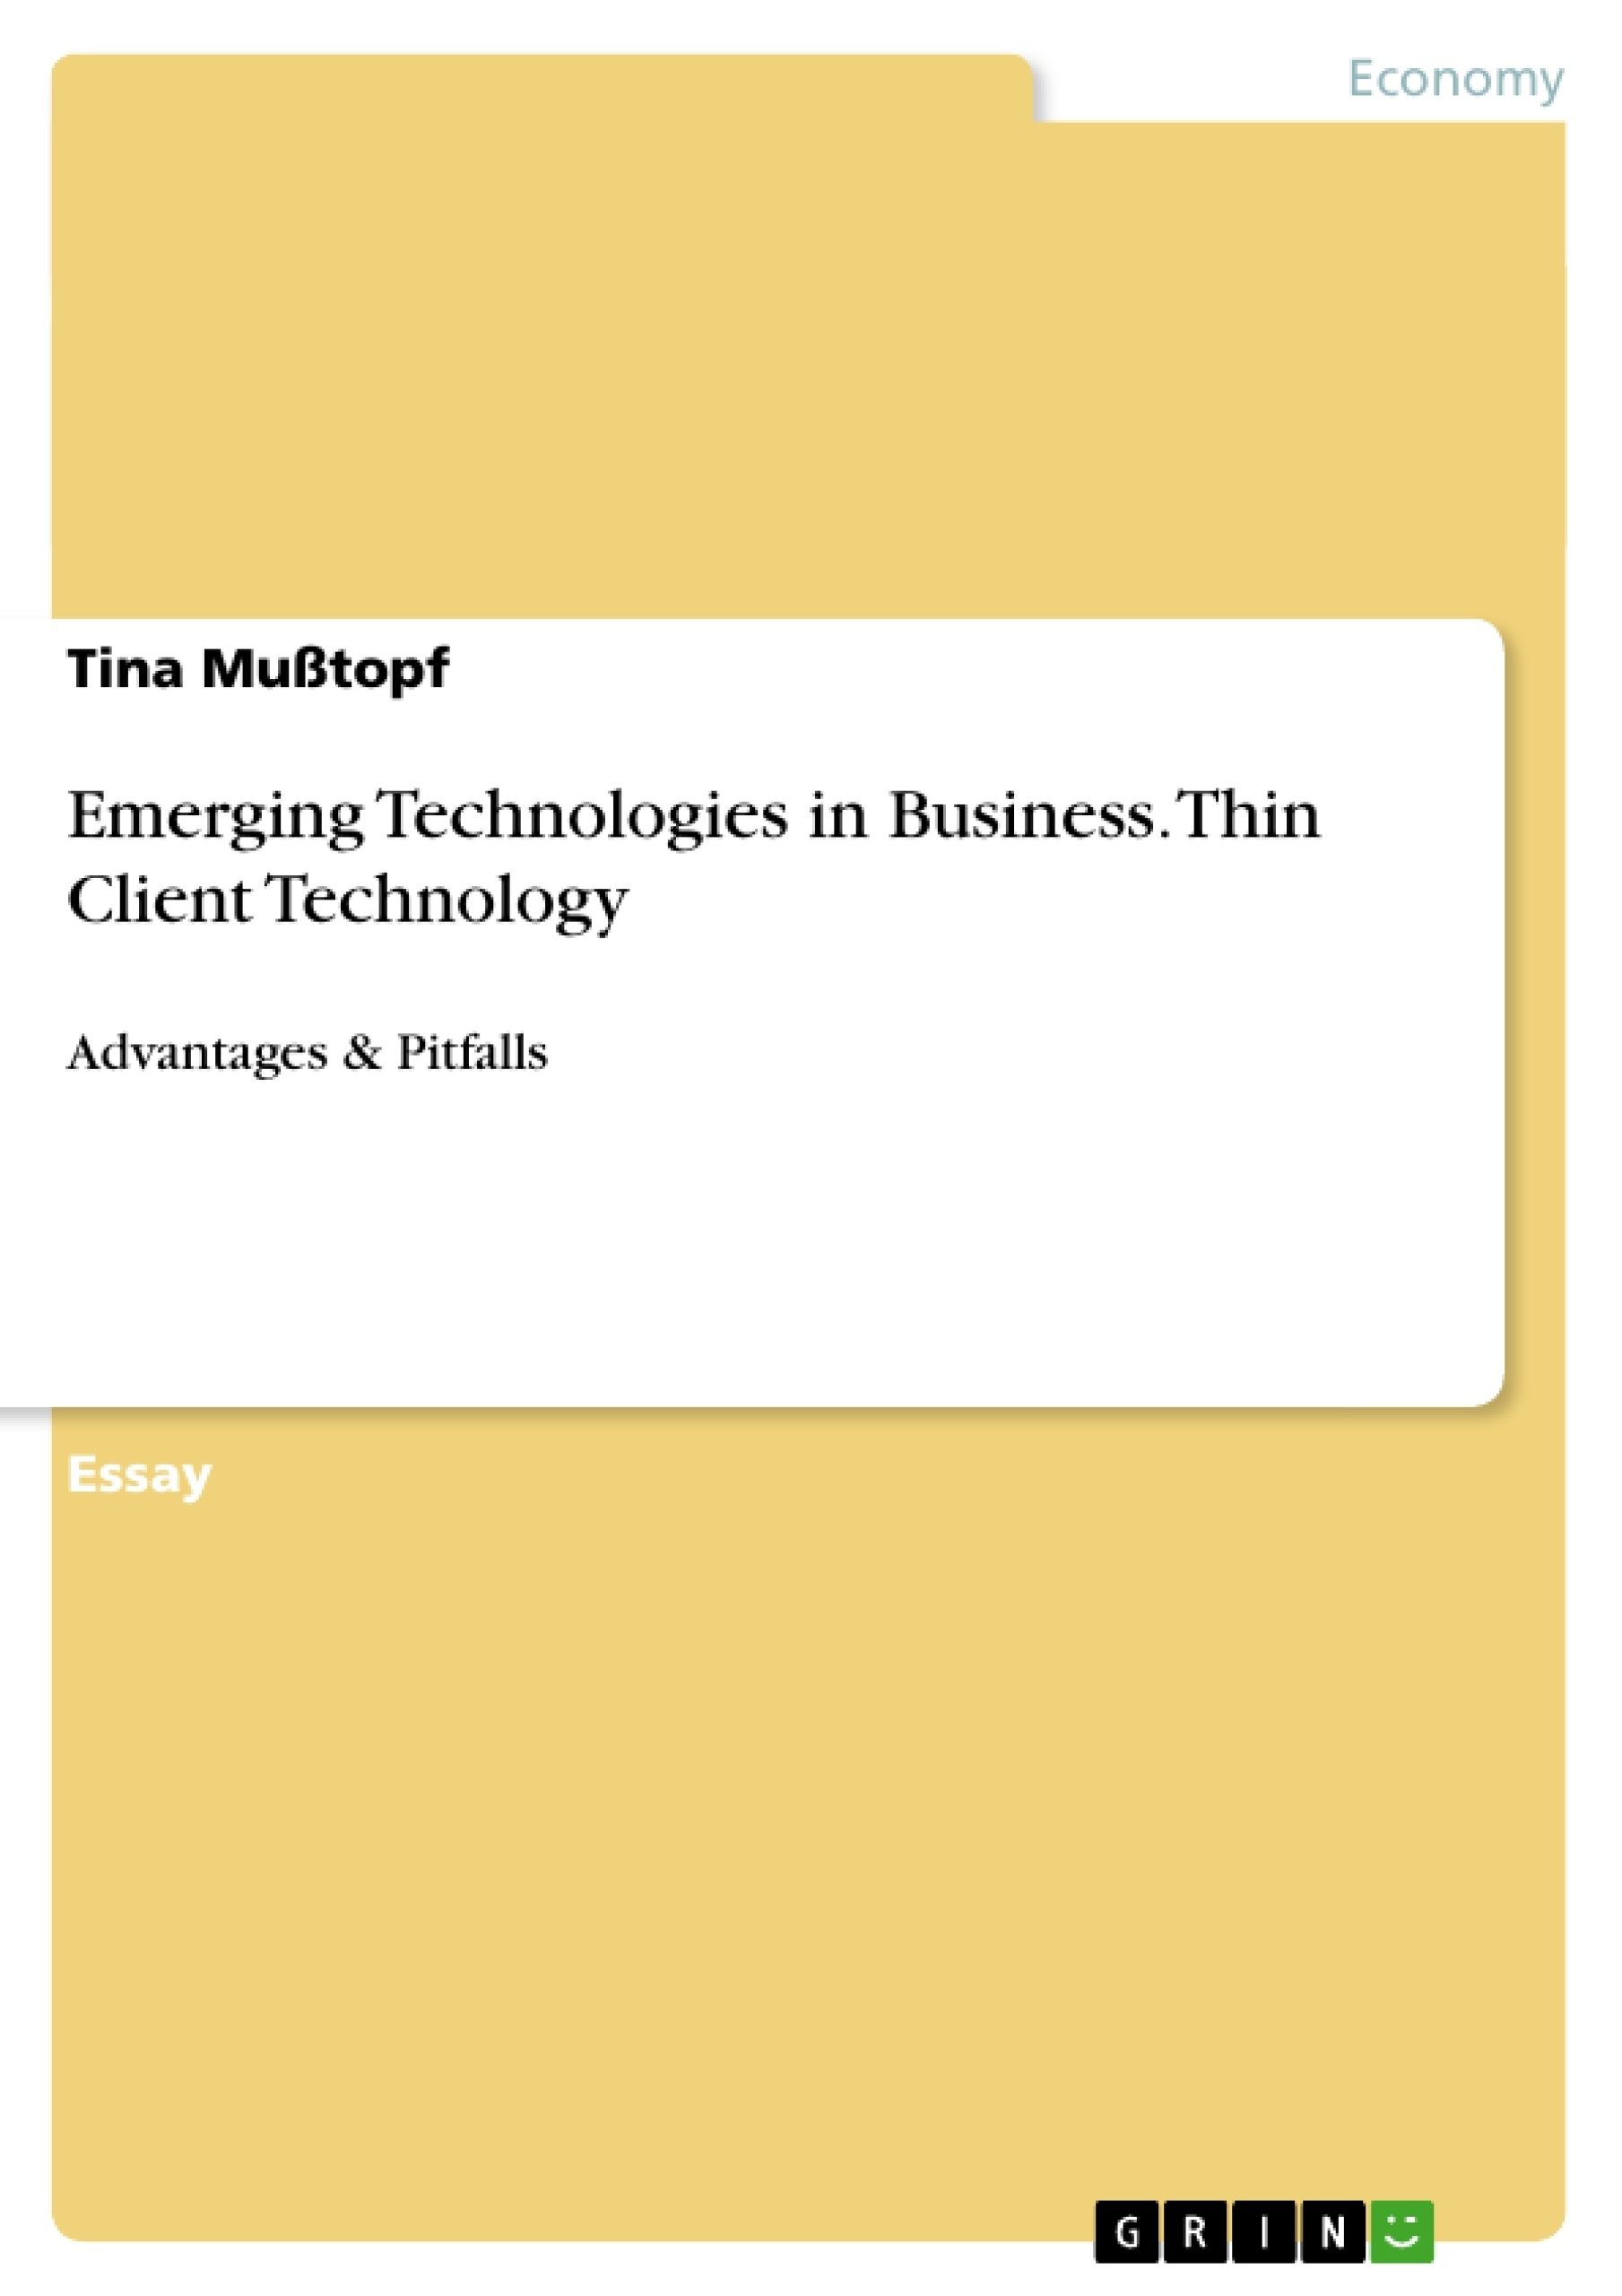 Title: Emerging Technologies in Business. Thin Client Technology